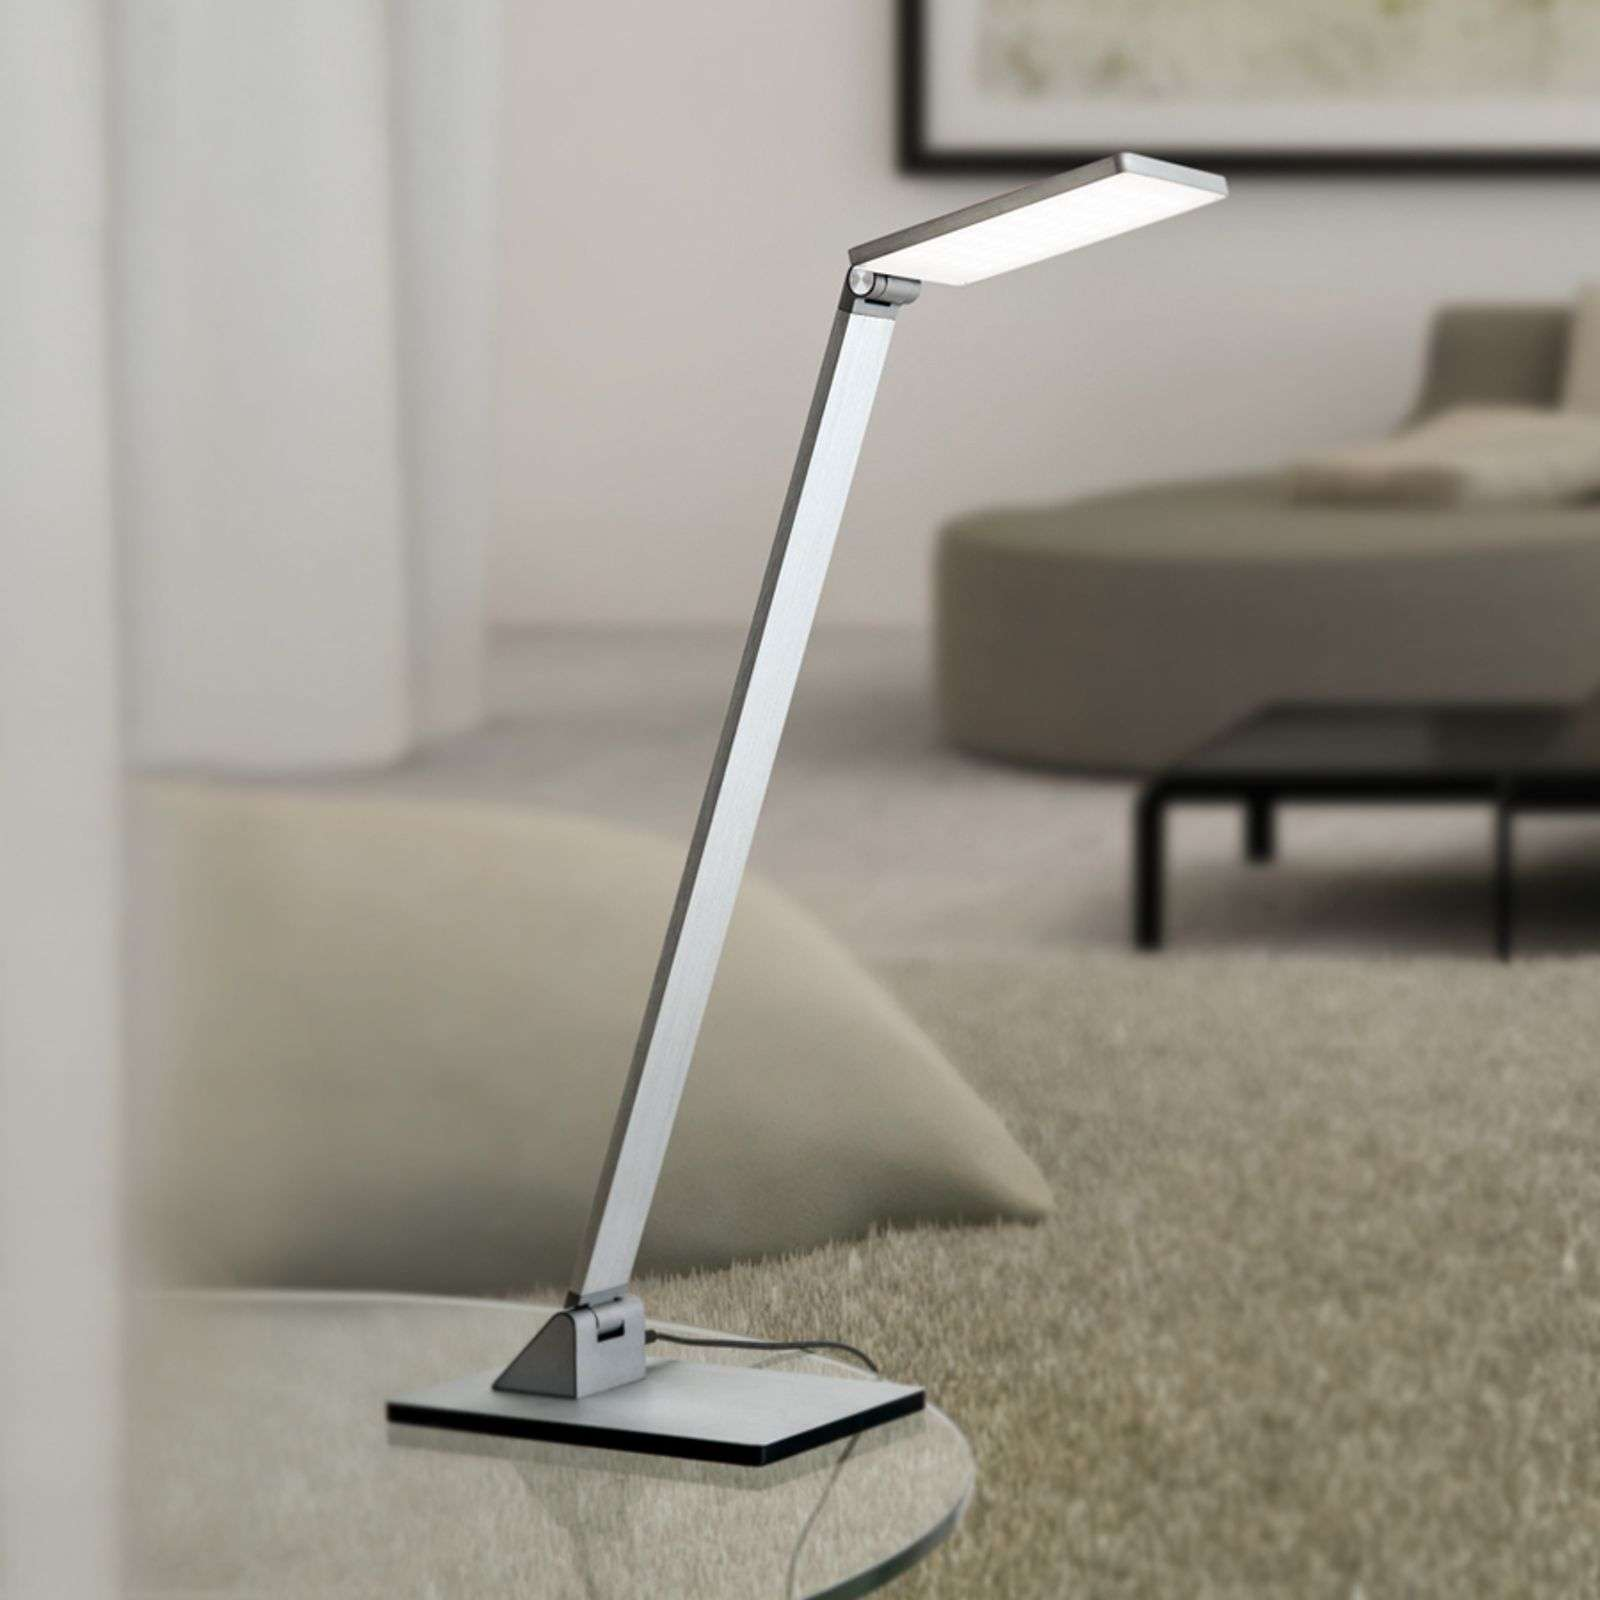 Lampe à poser LED Ayana, dimmable 4 niveaux